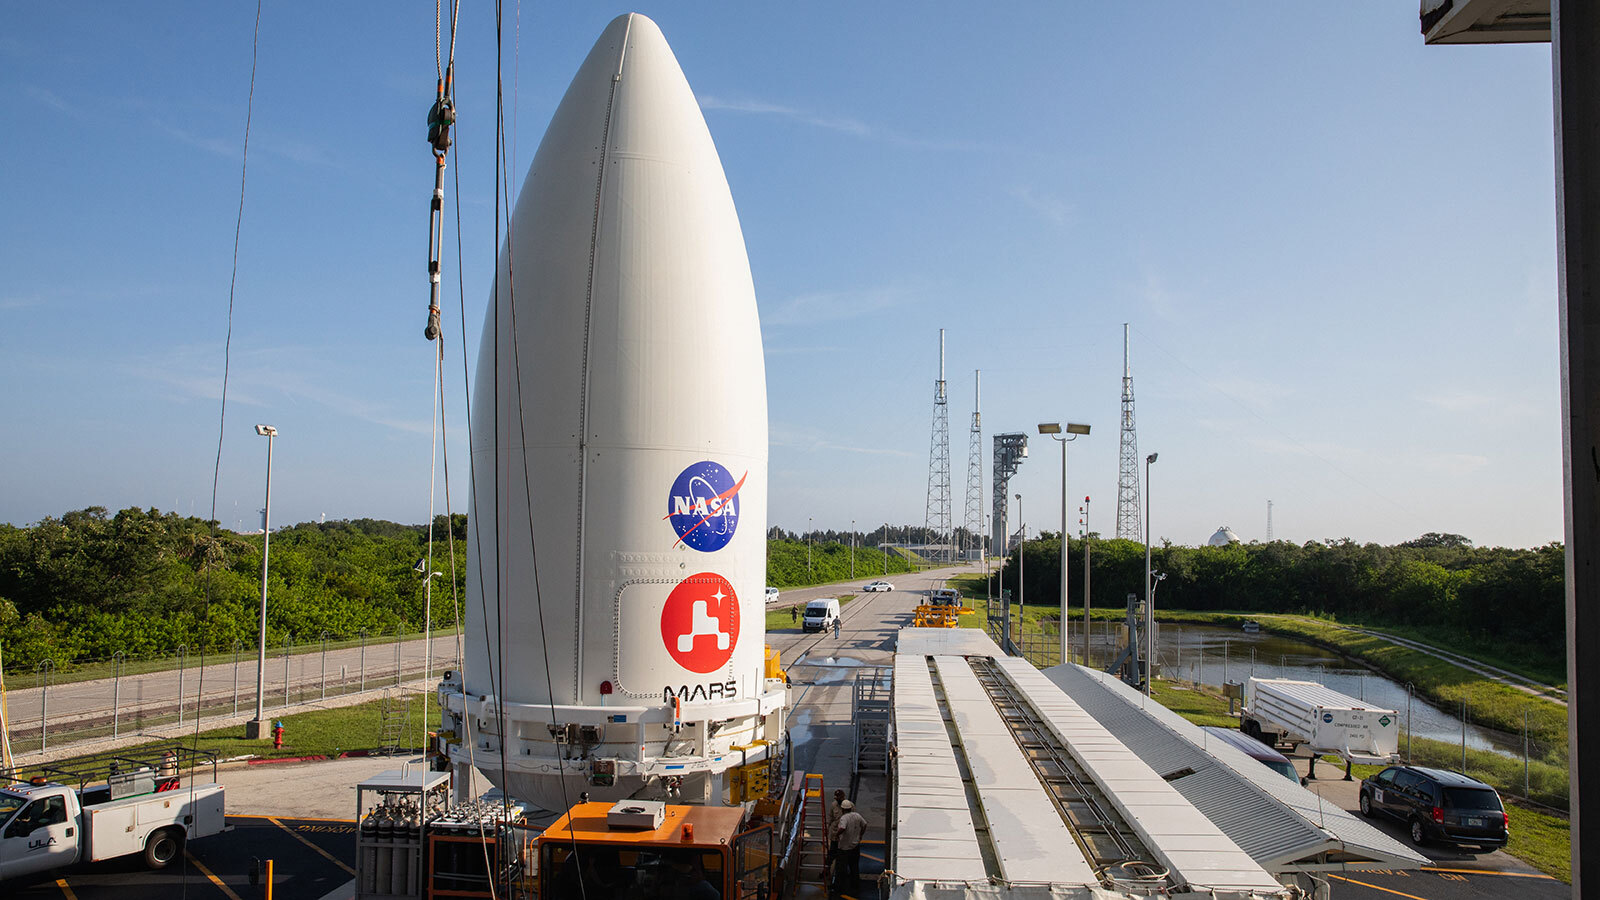 NASA's Perseverance Rover Attached to Atlas V Rocket – NASA's Mars Exploration Program - NASA Mars Exploration